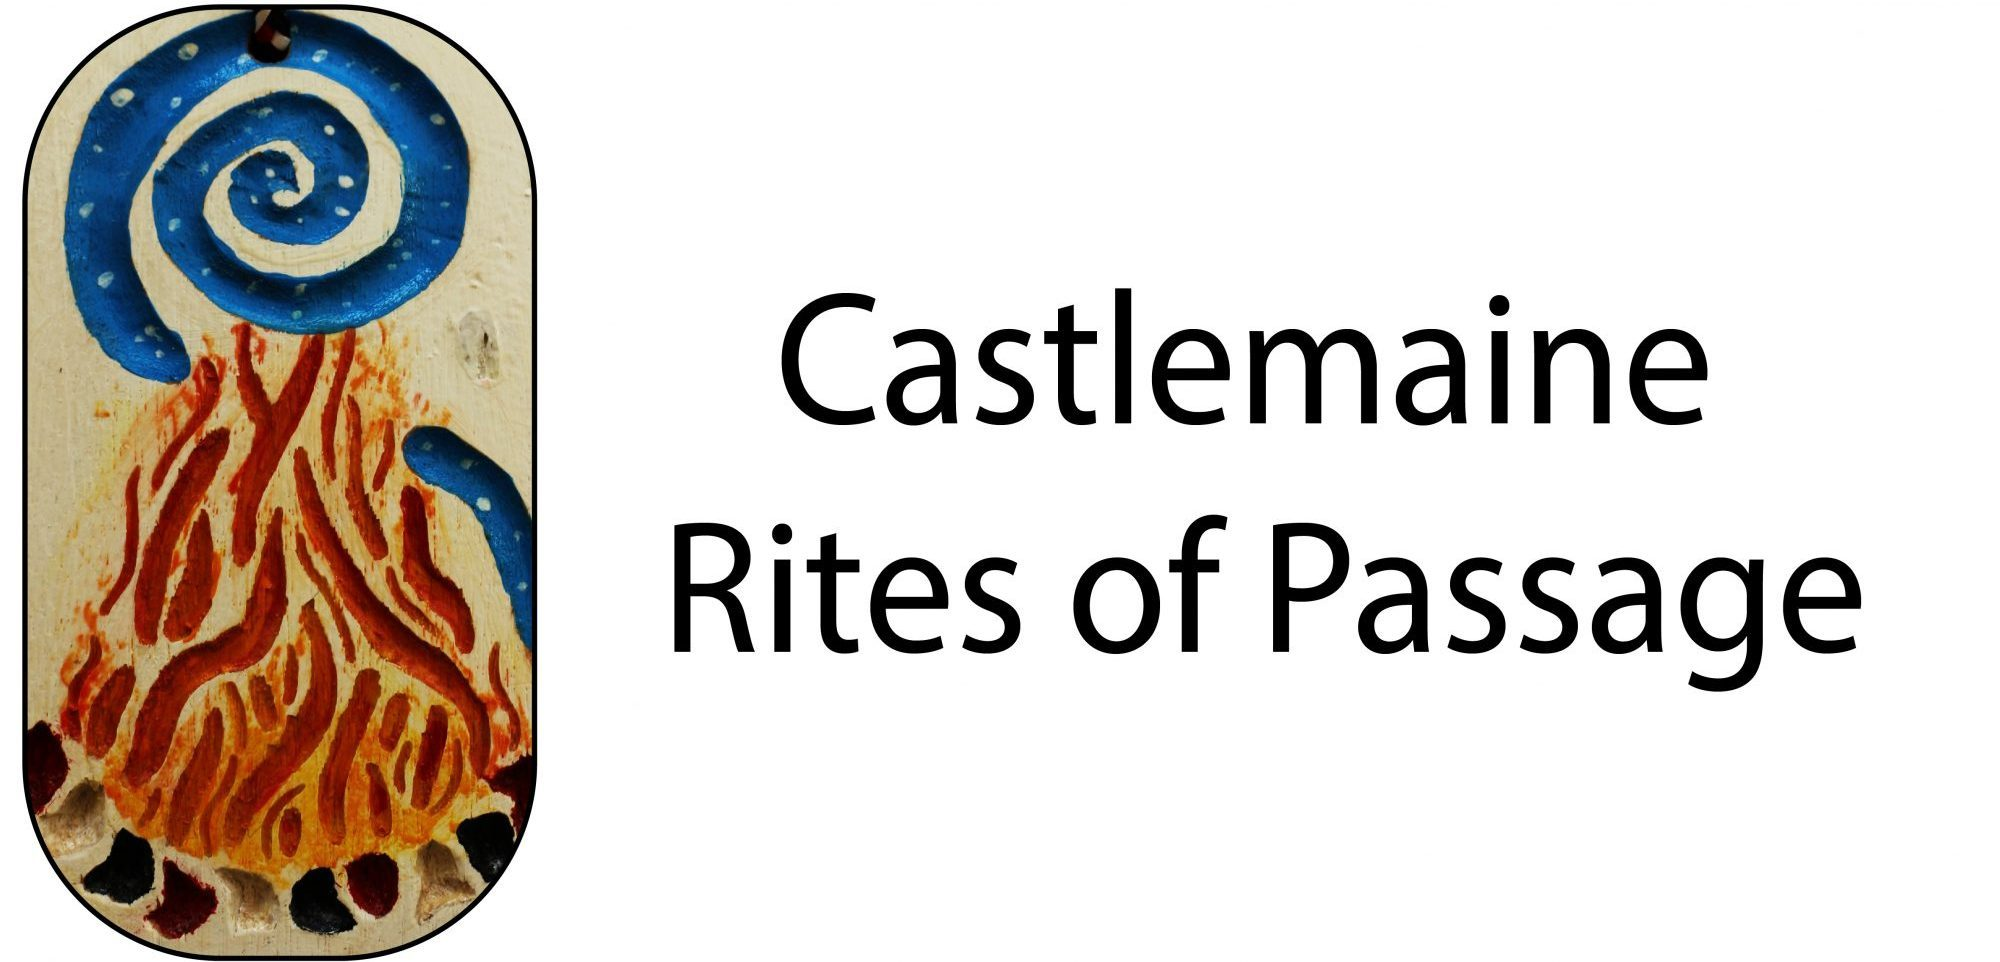 Castlemaine Rites of Passage